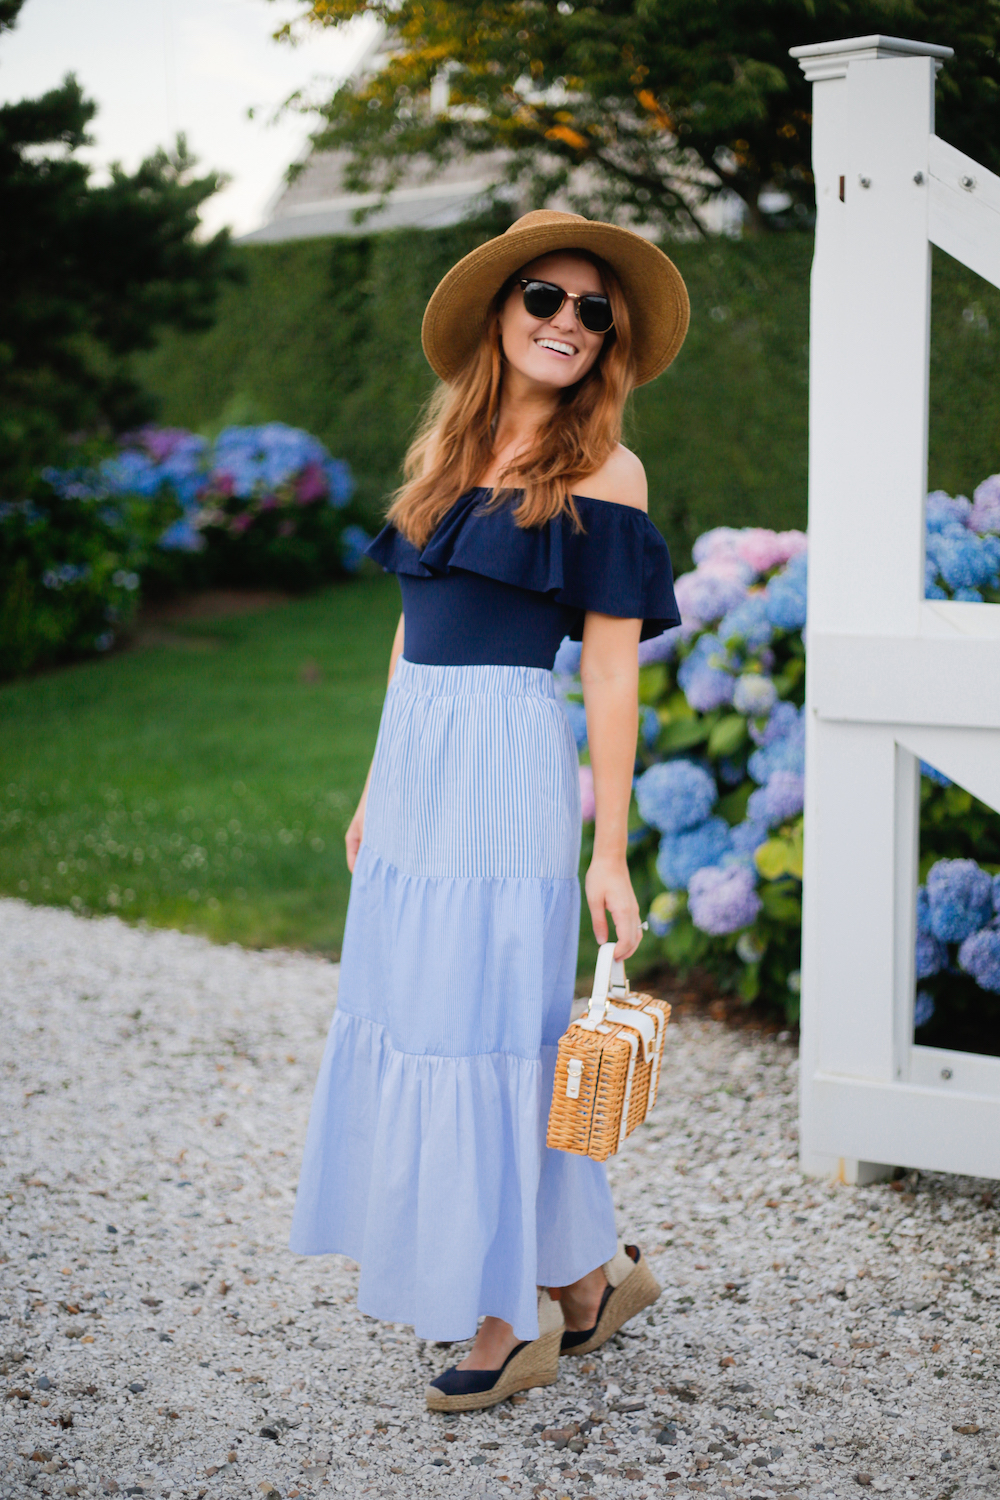 tuckernuck packable hat j.crew off-the-shoulder ruffle top tuckernuck emerson striped maxi skirt